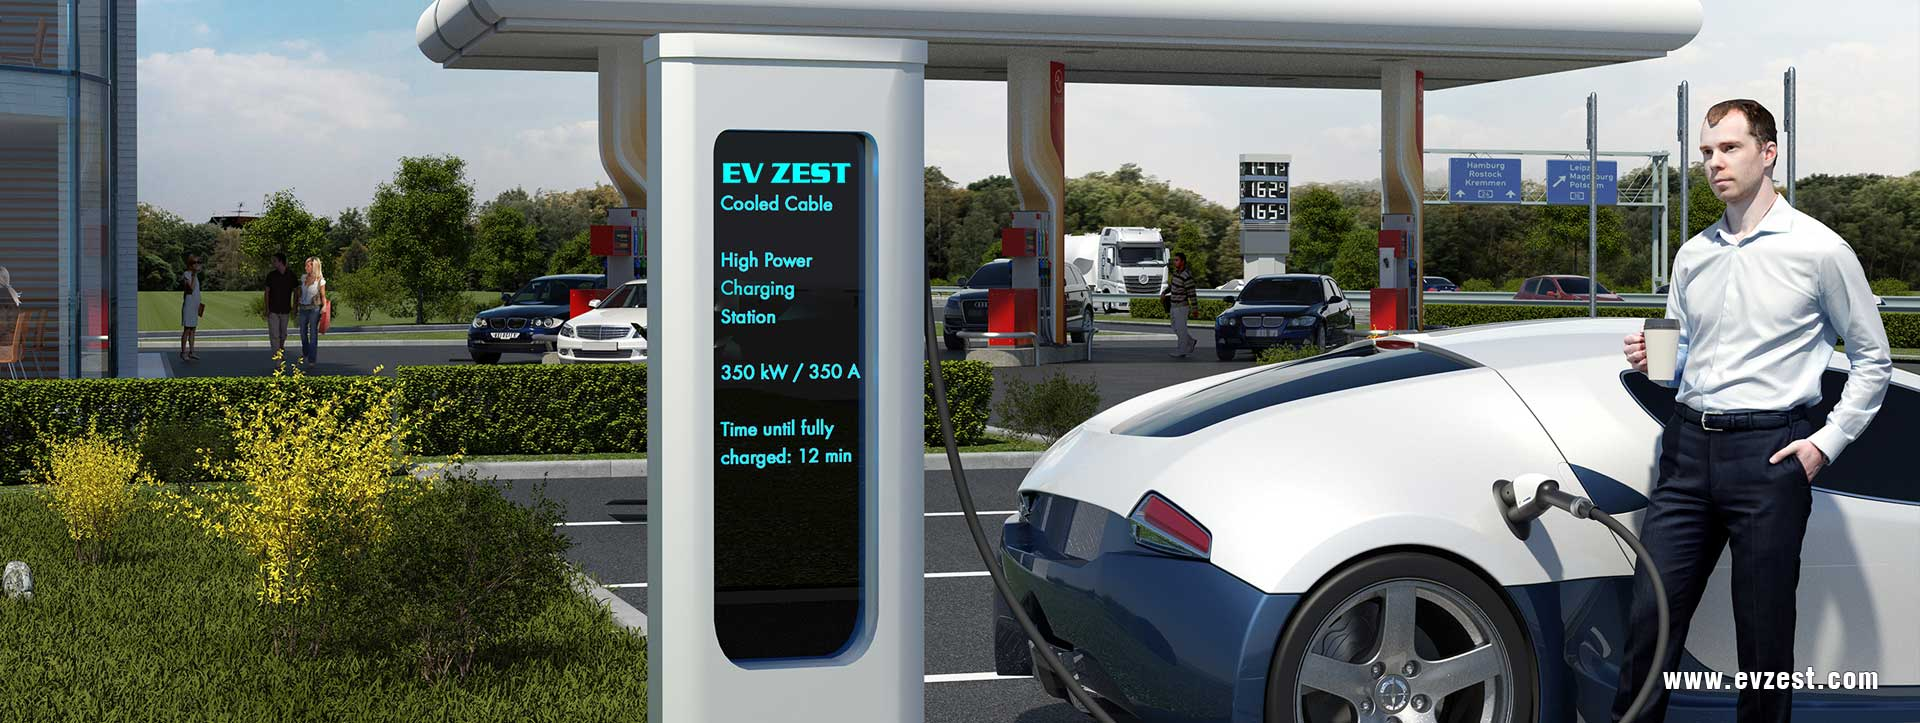 ev charging station electric car charging station electric vehicle charger station manufacturers in India